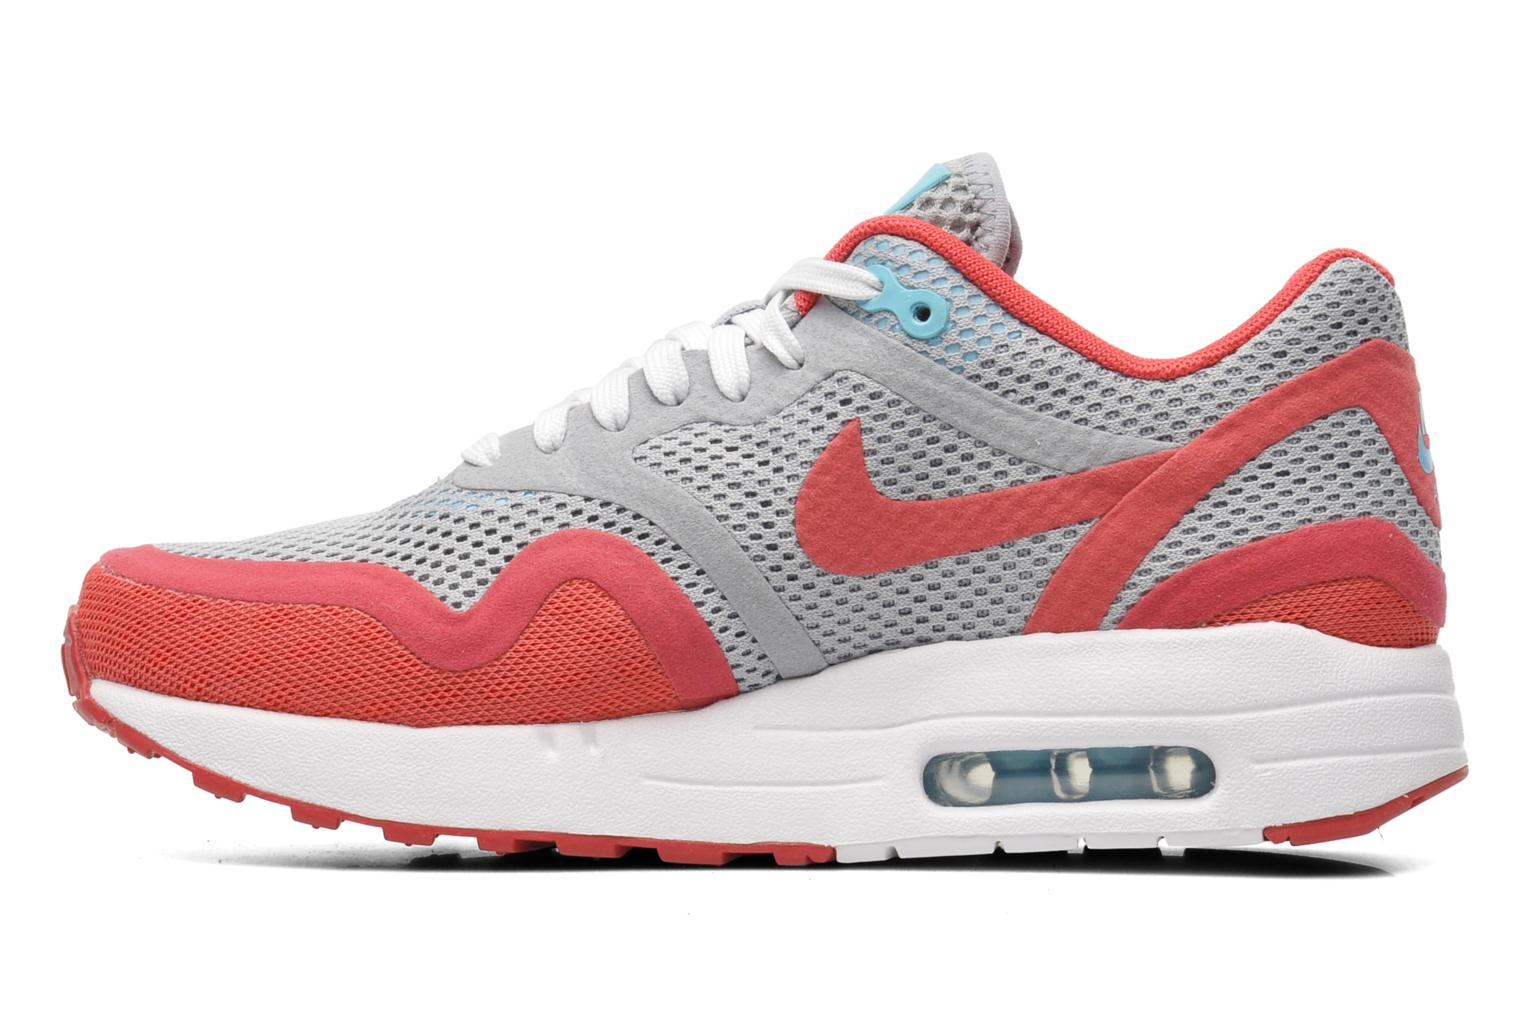 Wmns Nike Air Max 1 Breeze Wolf Grey-Grnm-Plrzd Bl-Lgn Rd